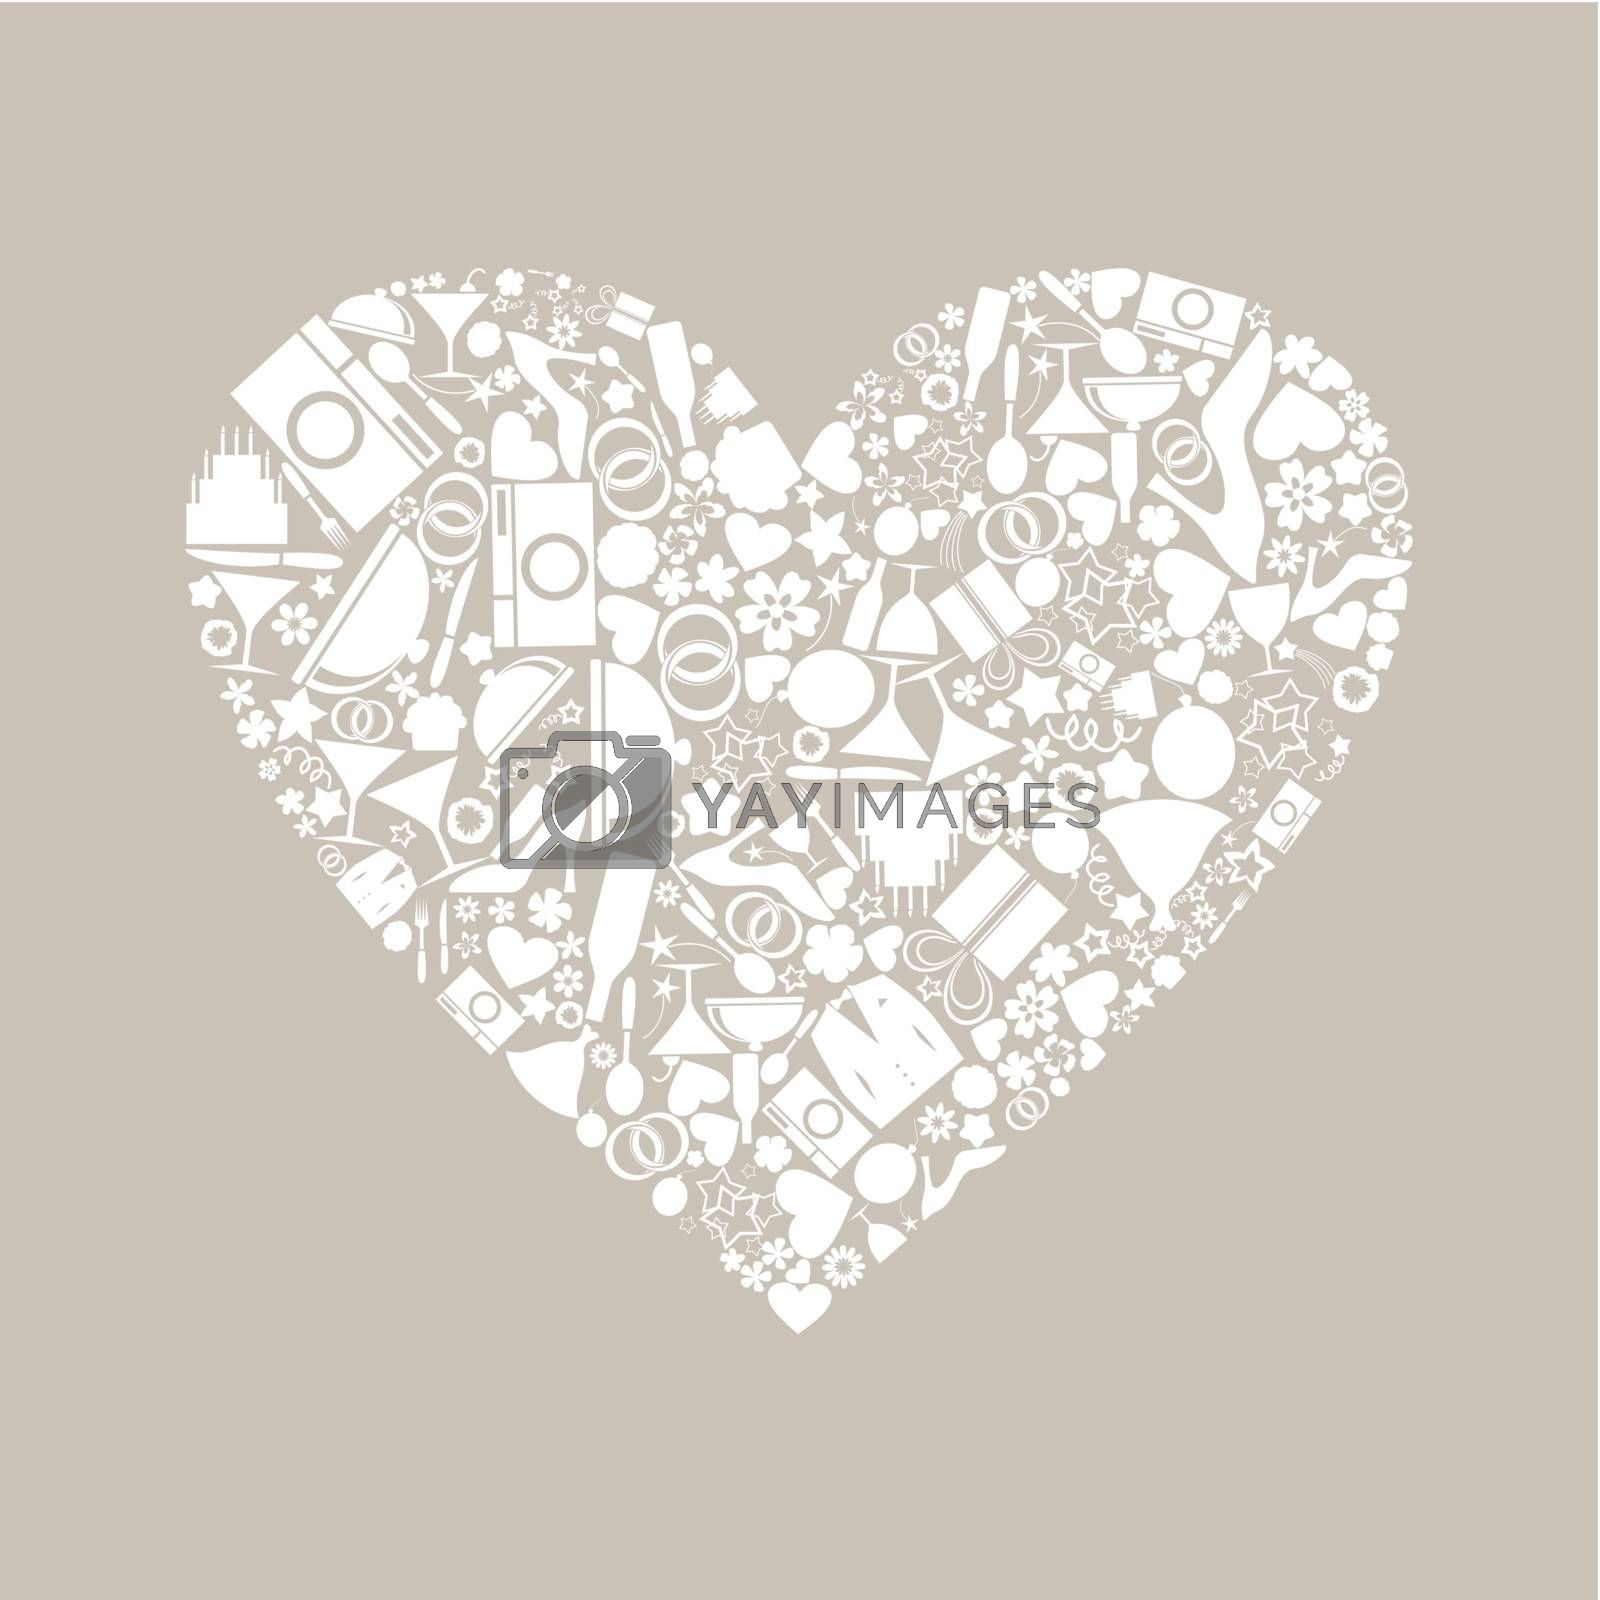 Heart made of wedding subjects. A vector illustration